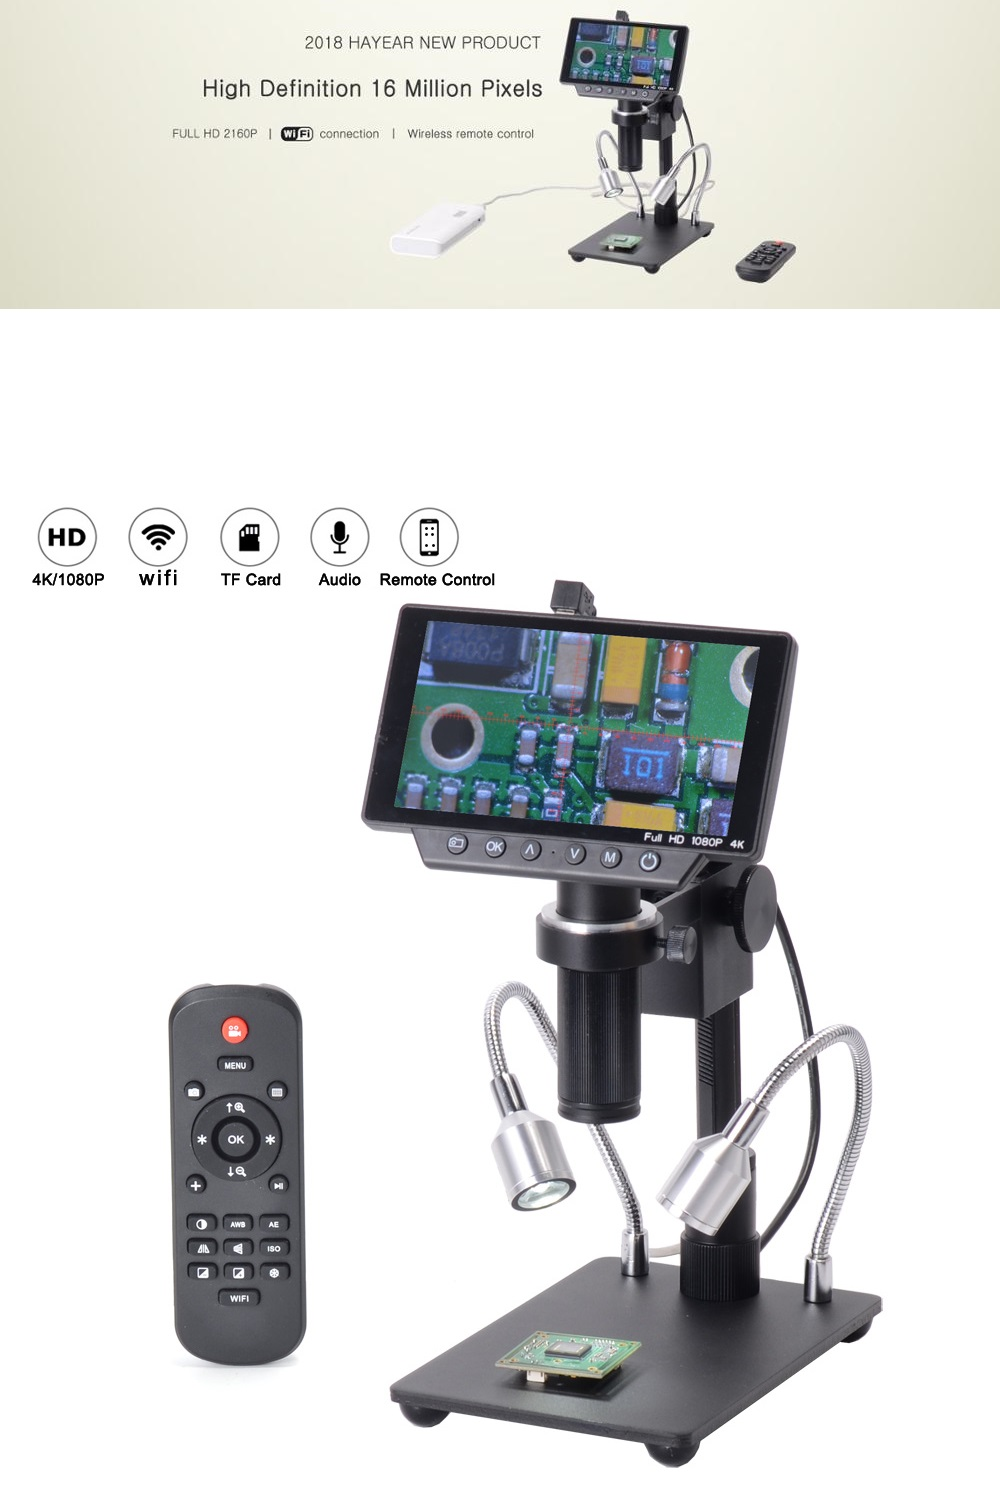 HAYEAR HY-1070 5 Inch Screen 16MP 4K 1080P 60FPS USB & WIFI Digital Industry Microscope Camera 150X C-mount Lens 1/2.3 Image Sensor